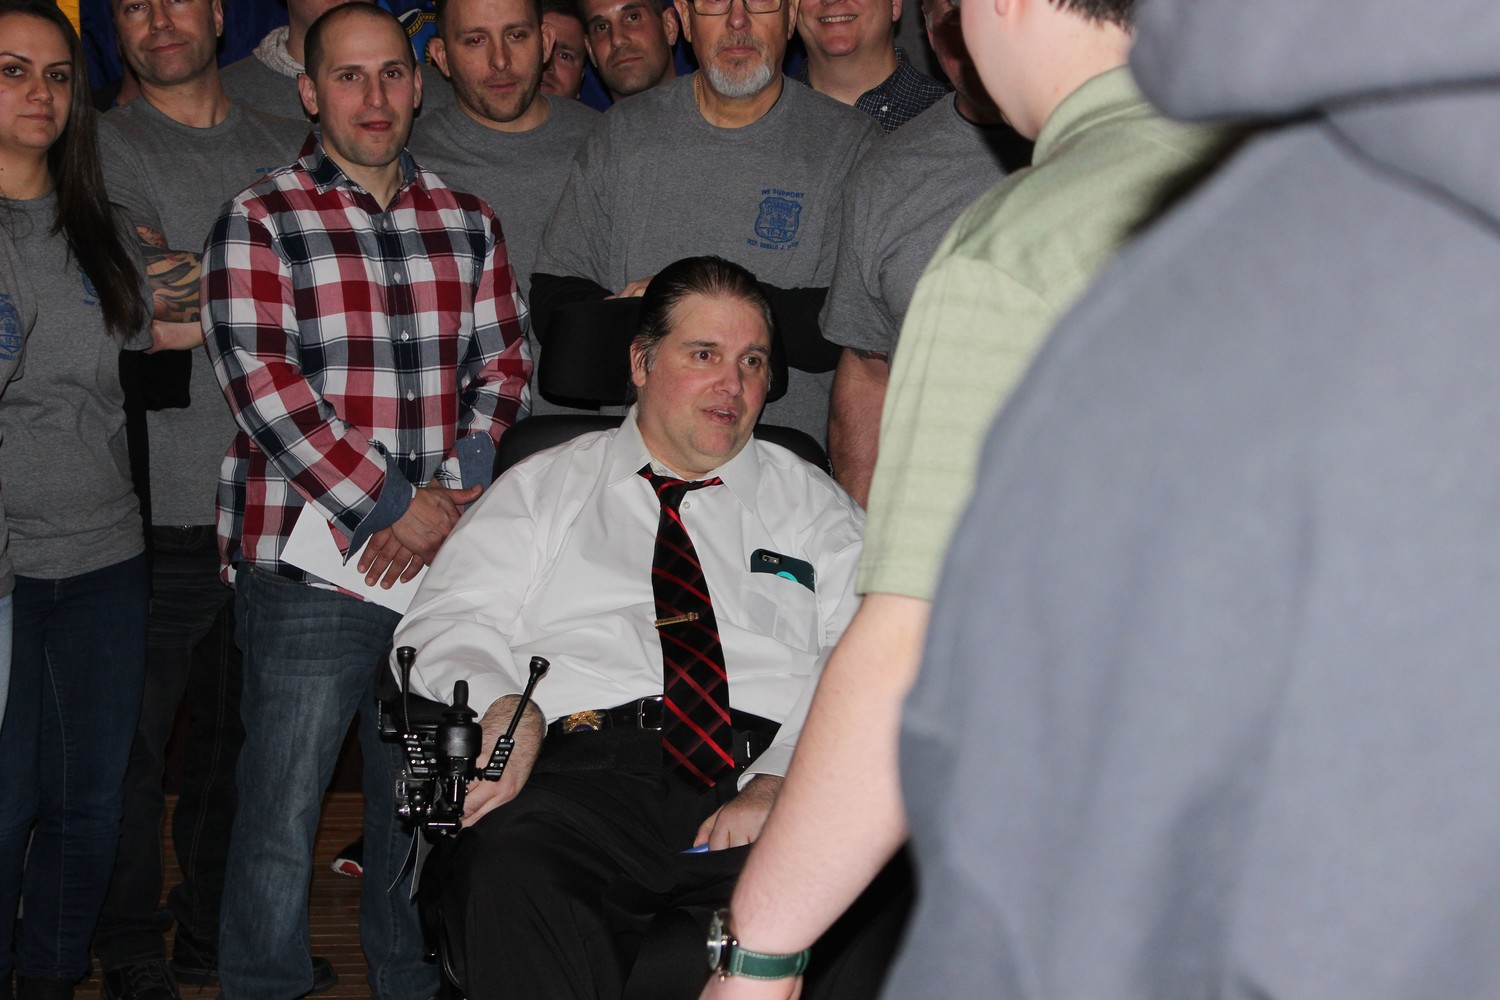 Longtime Lynbrook Police Sgt. Ronald Fleury was diagnosed with amyotrophic lateral sclerosis, otherwise known as Lou Gehrig's disease, last February. The Lynbrook Police Benevolent Association hosted a fundraiser in his honor on Jan. 31.